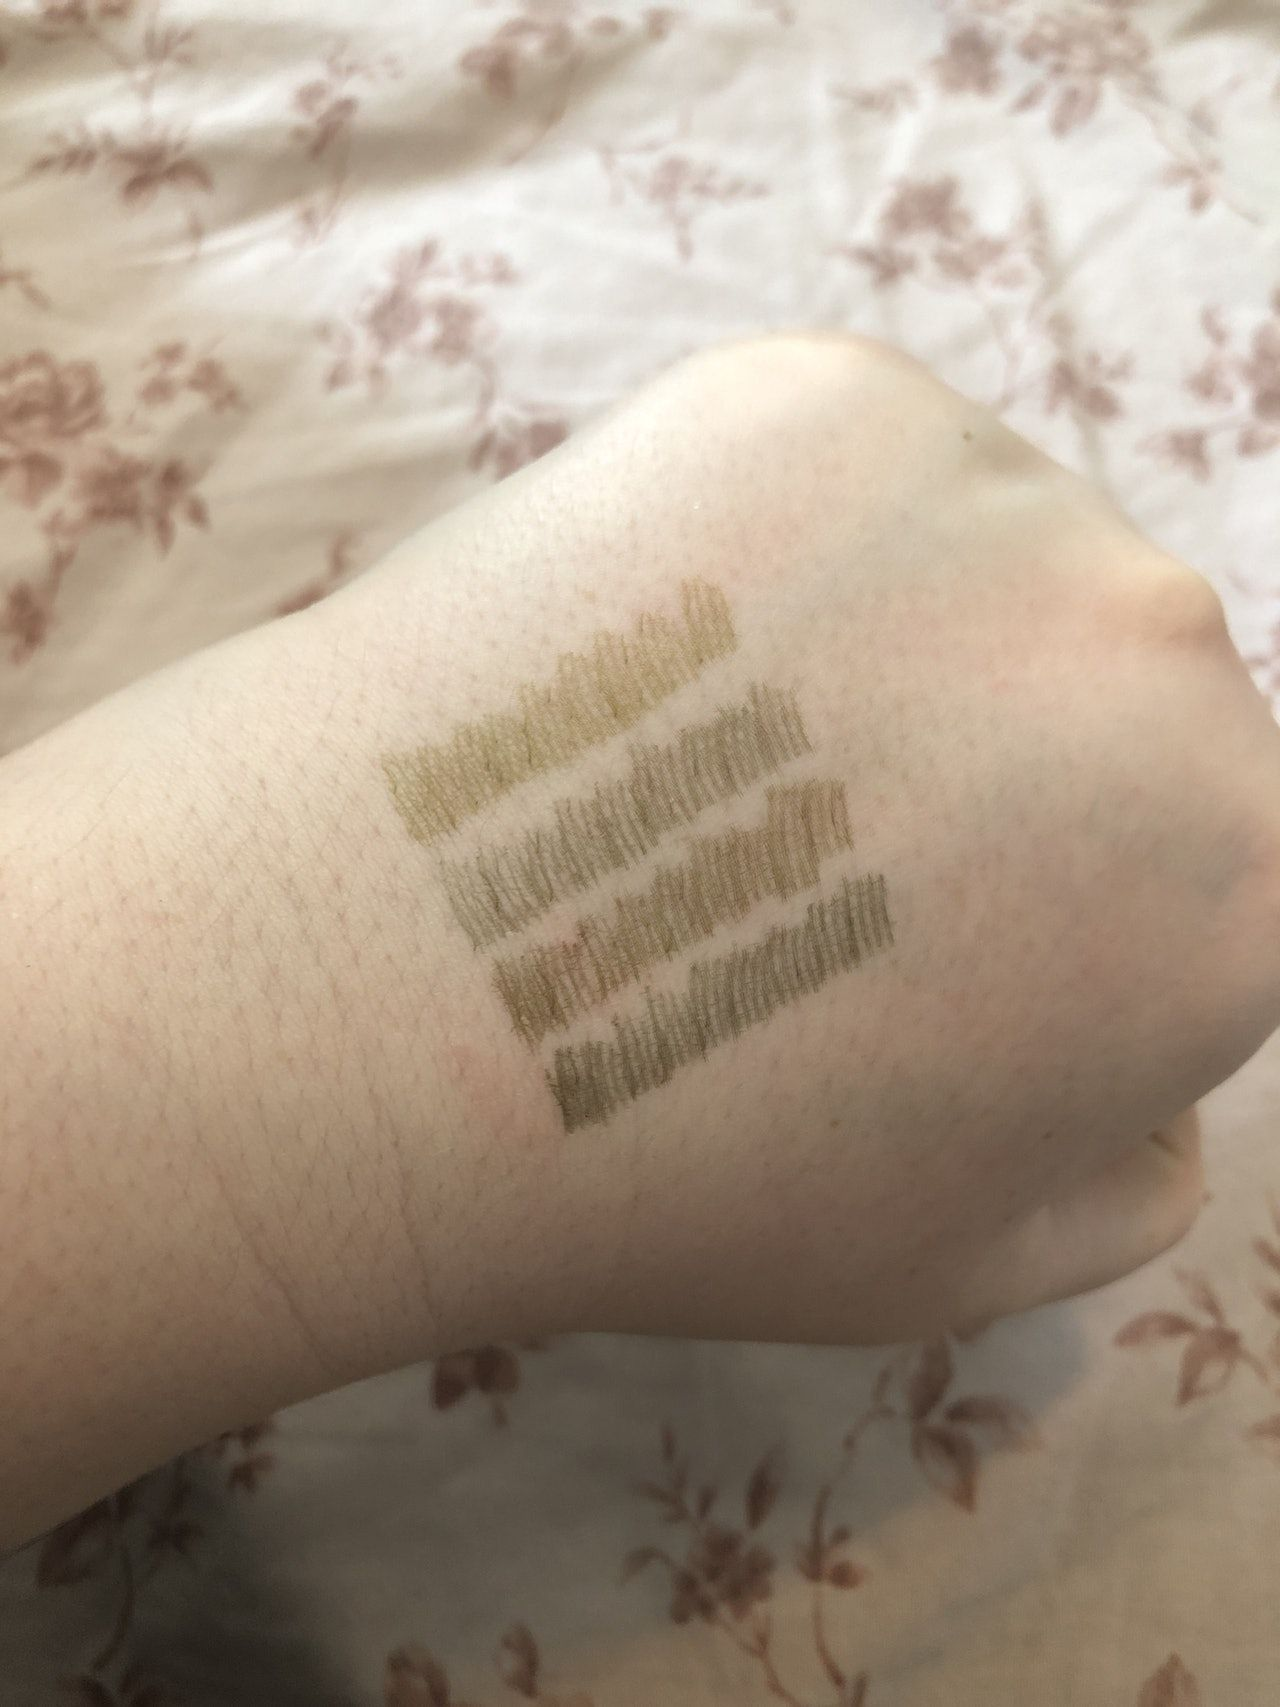 I Tried Maybelline S Tattoo Studio Brow Tint Pen It S The Perfect